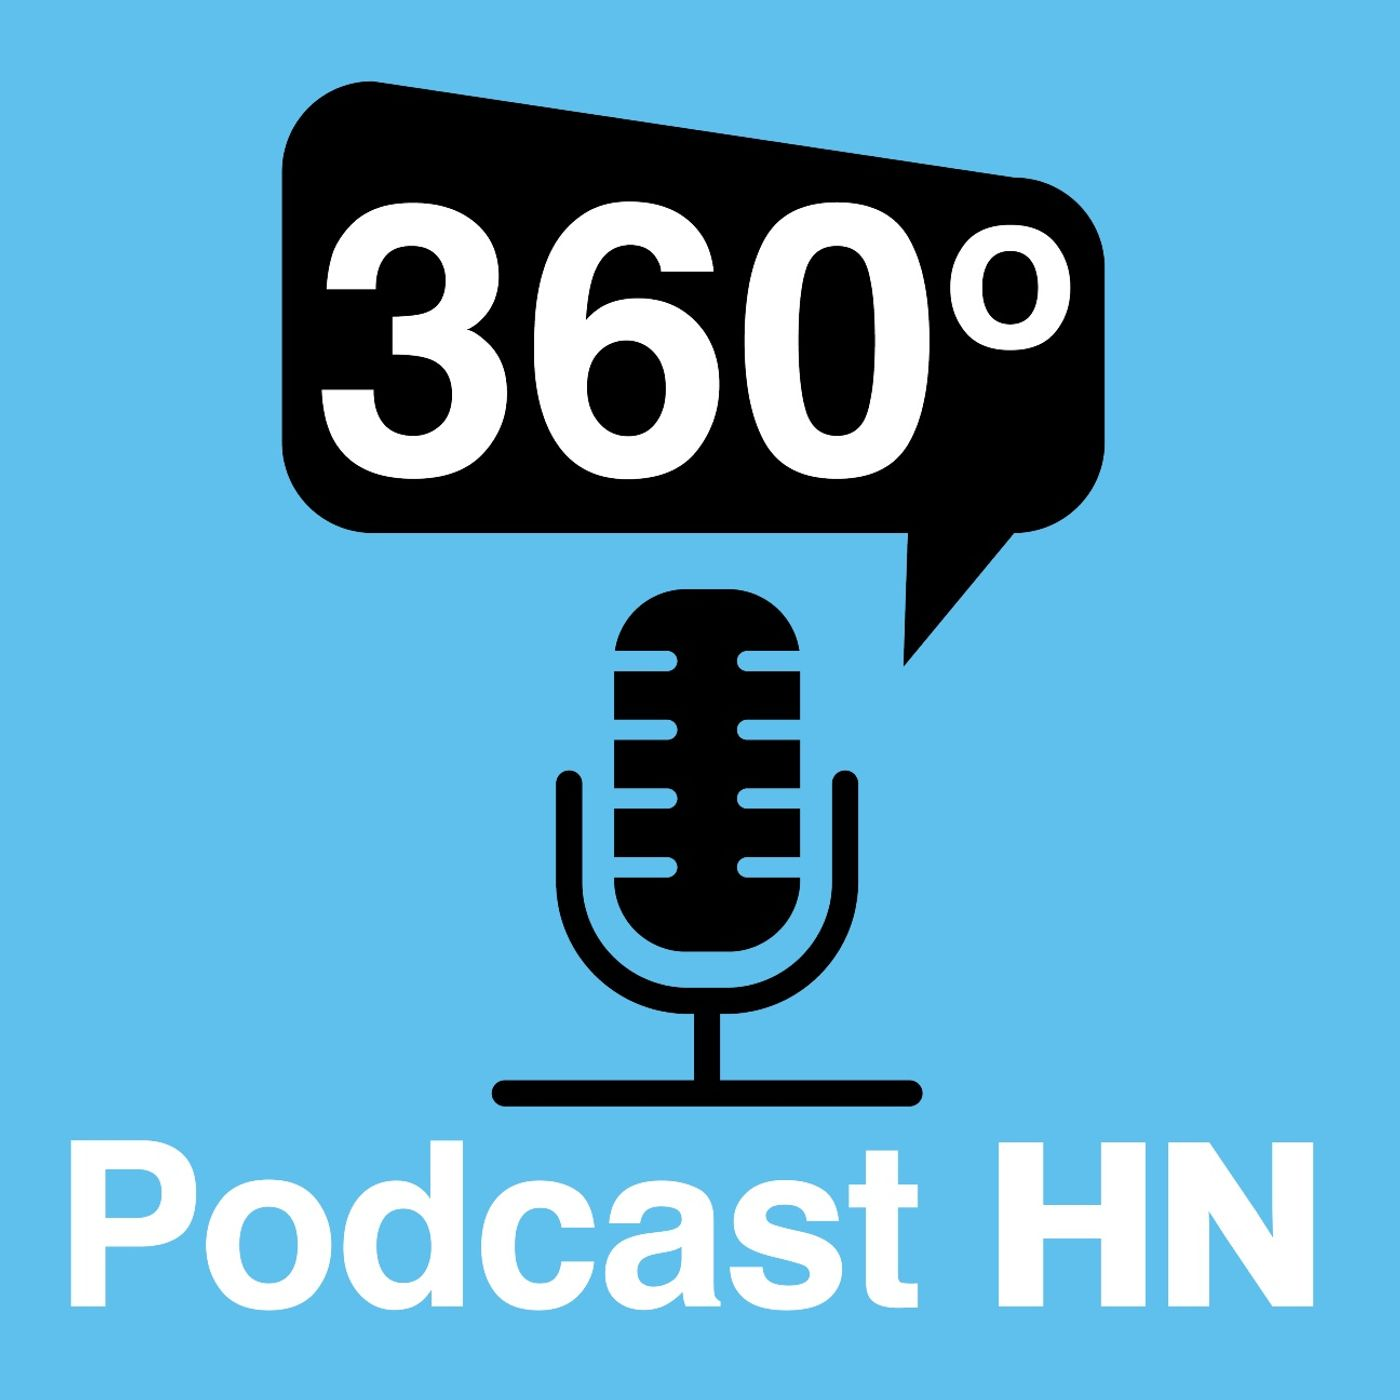 Podcast HN 360°